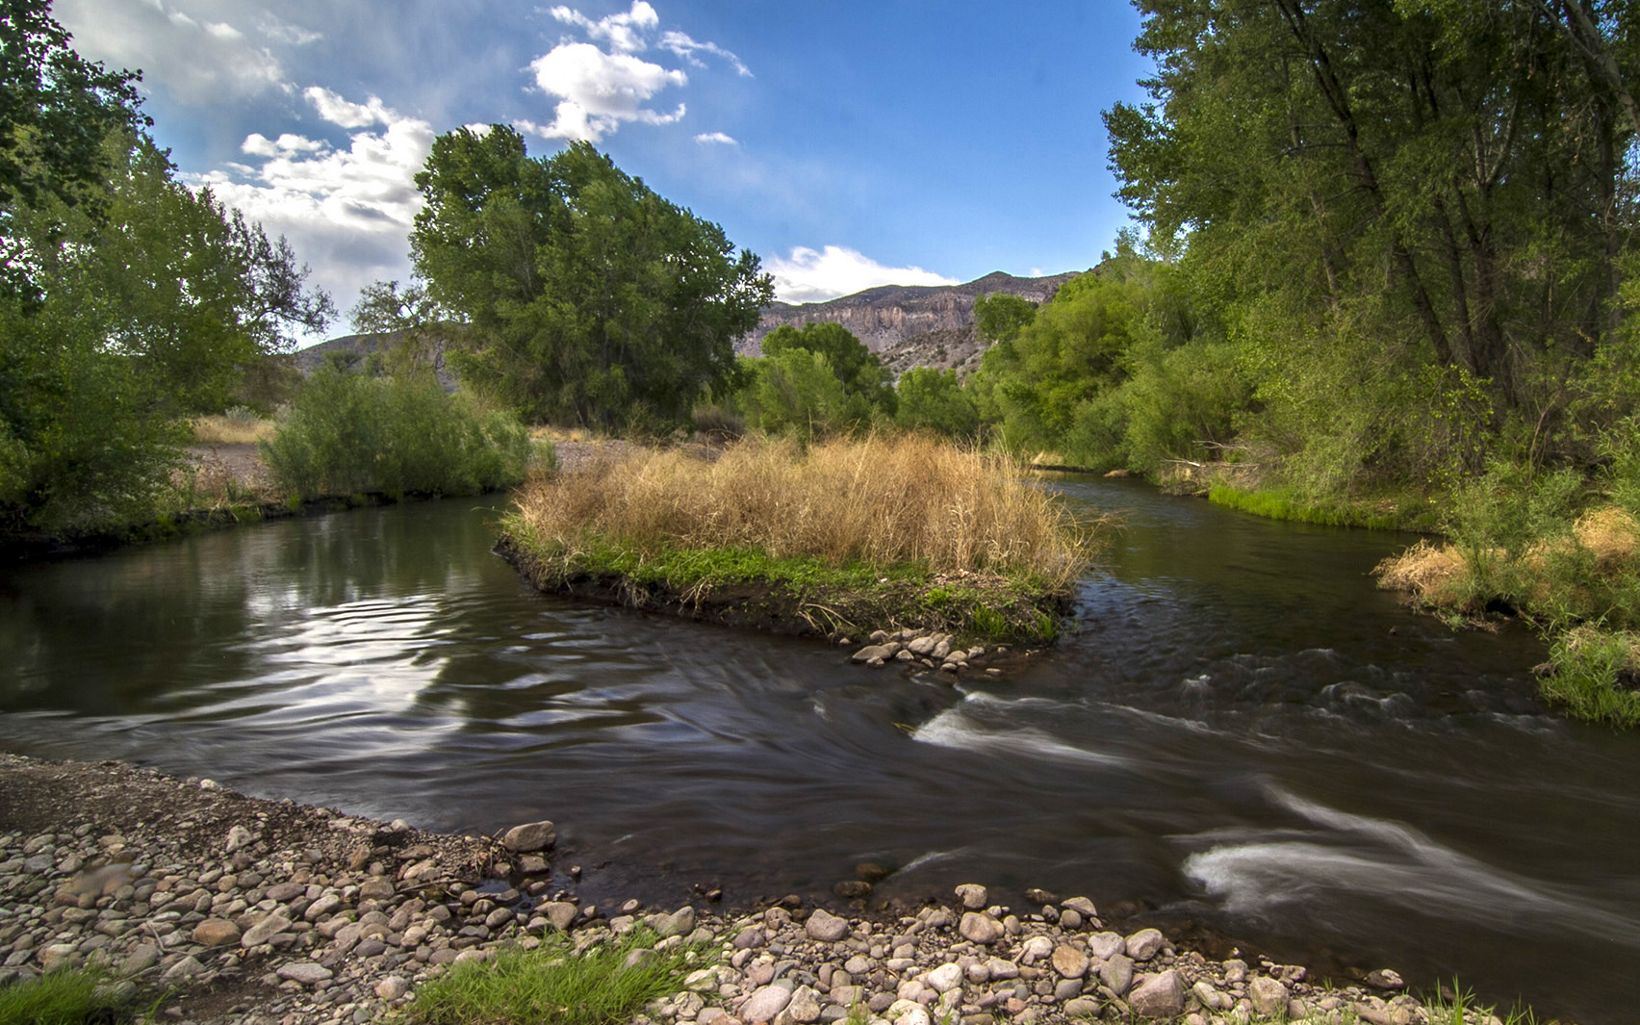 The Gila River flows around a small island under blue skies with forests and rocky hills in the background.